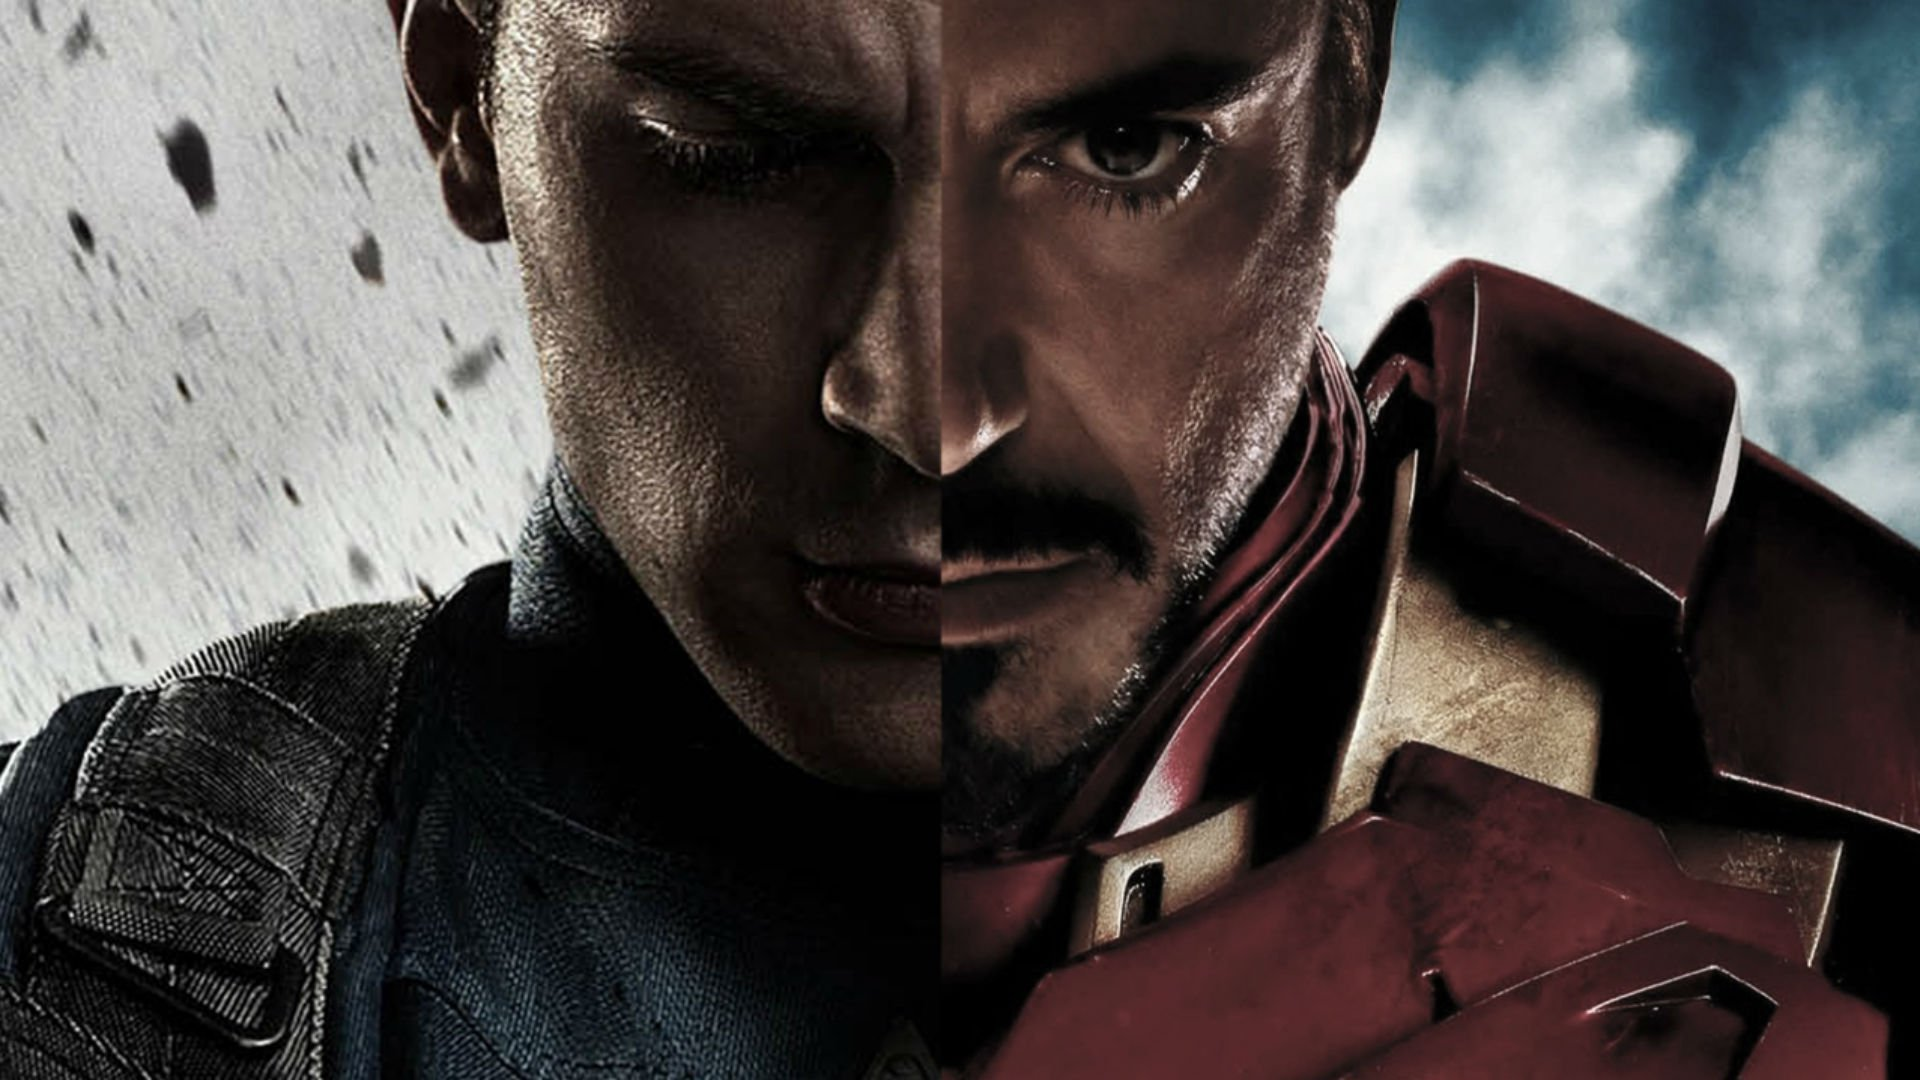 Captain America Vs Iron Man 1920x1080